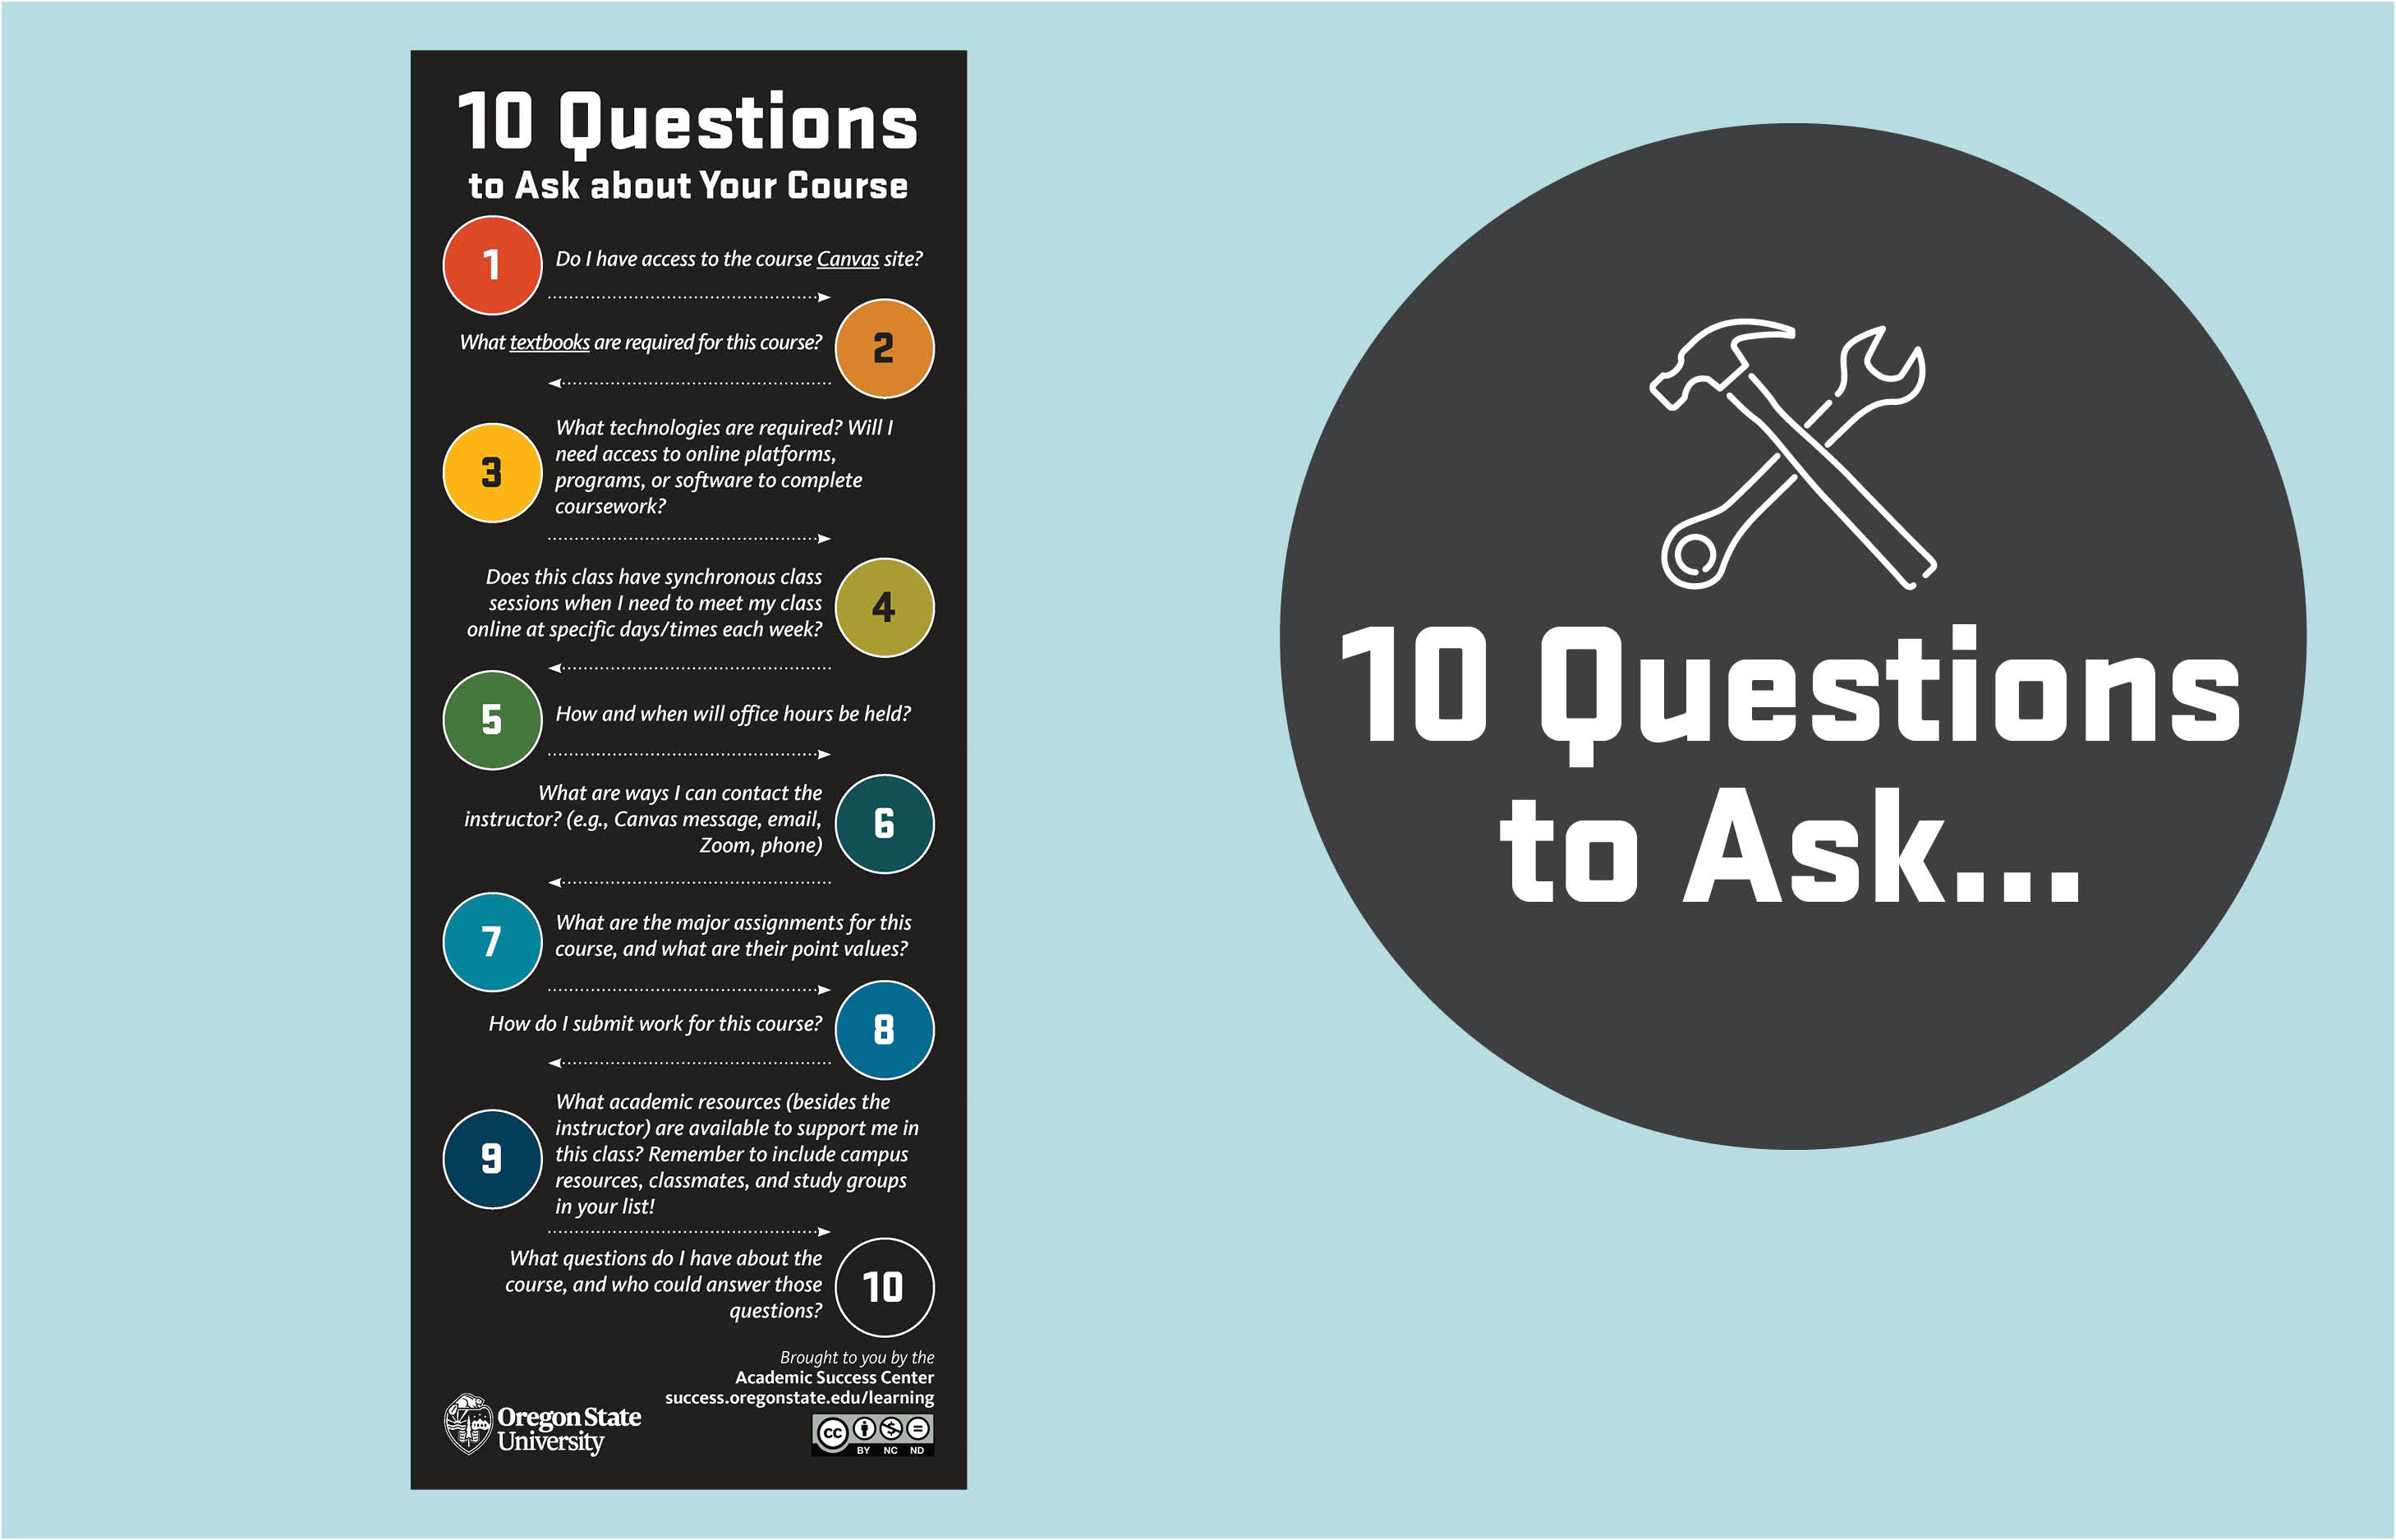 10 Questions to Ask About Your Course